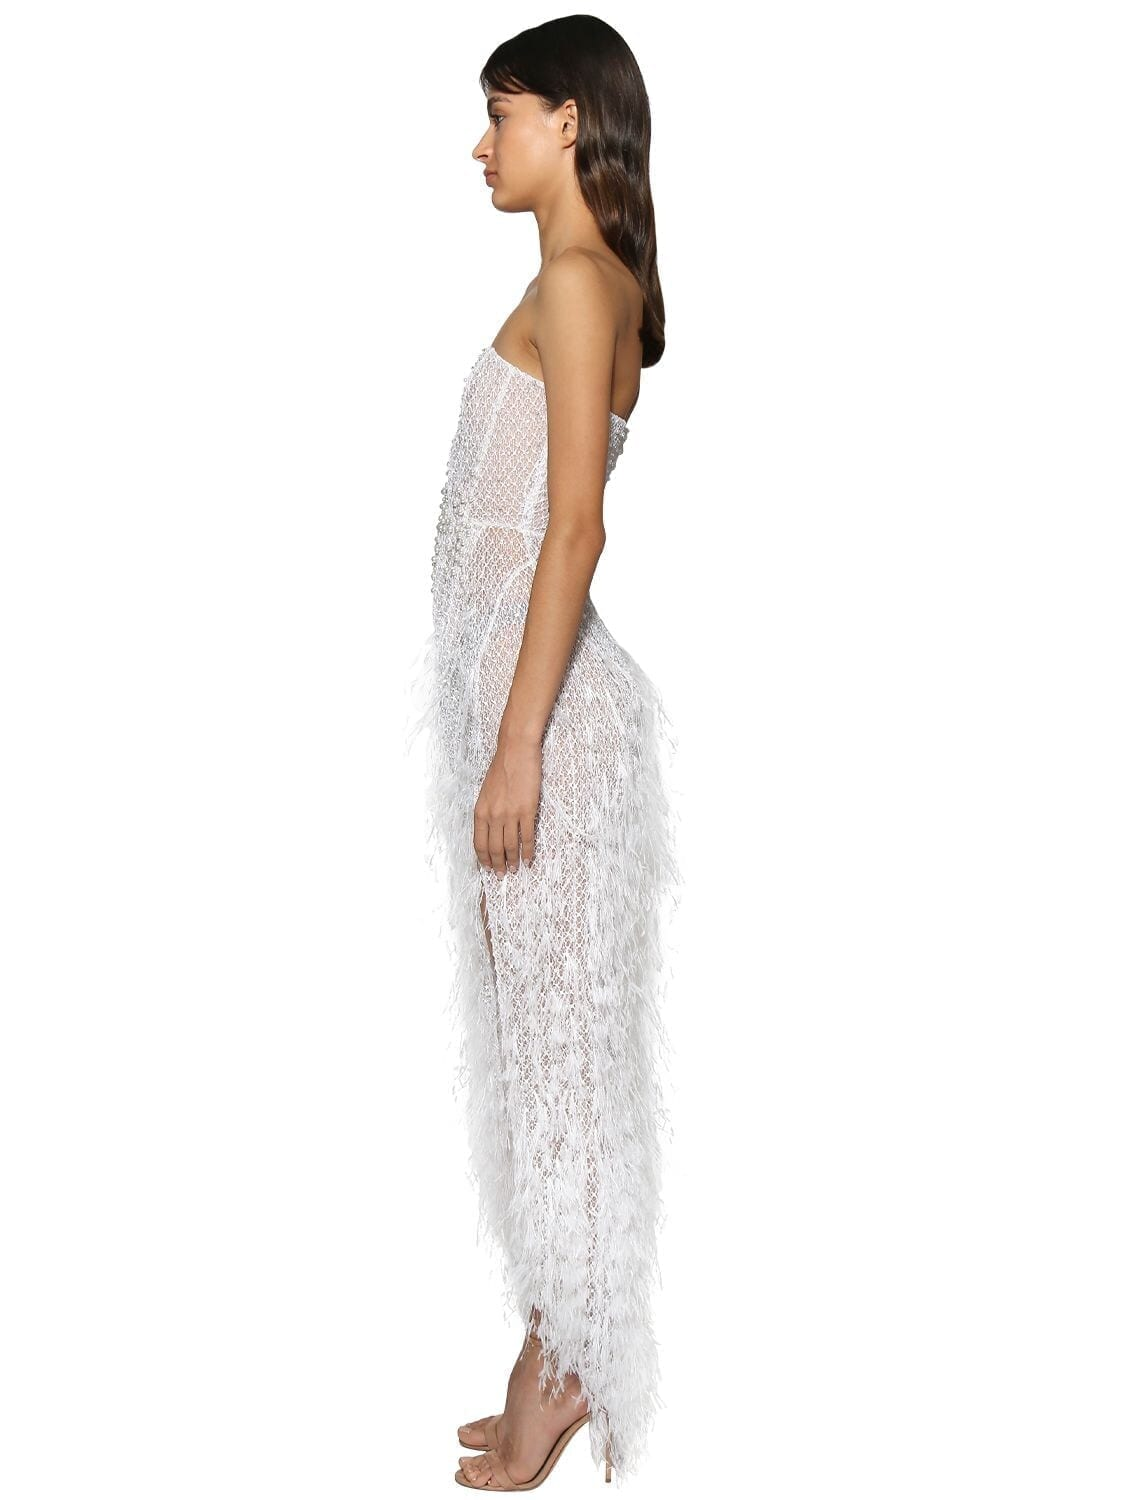 RALPH & RUSSO Embellished Strapless Lace Dress